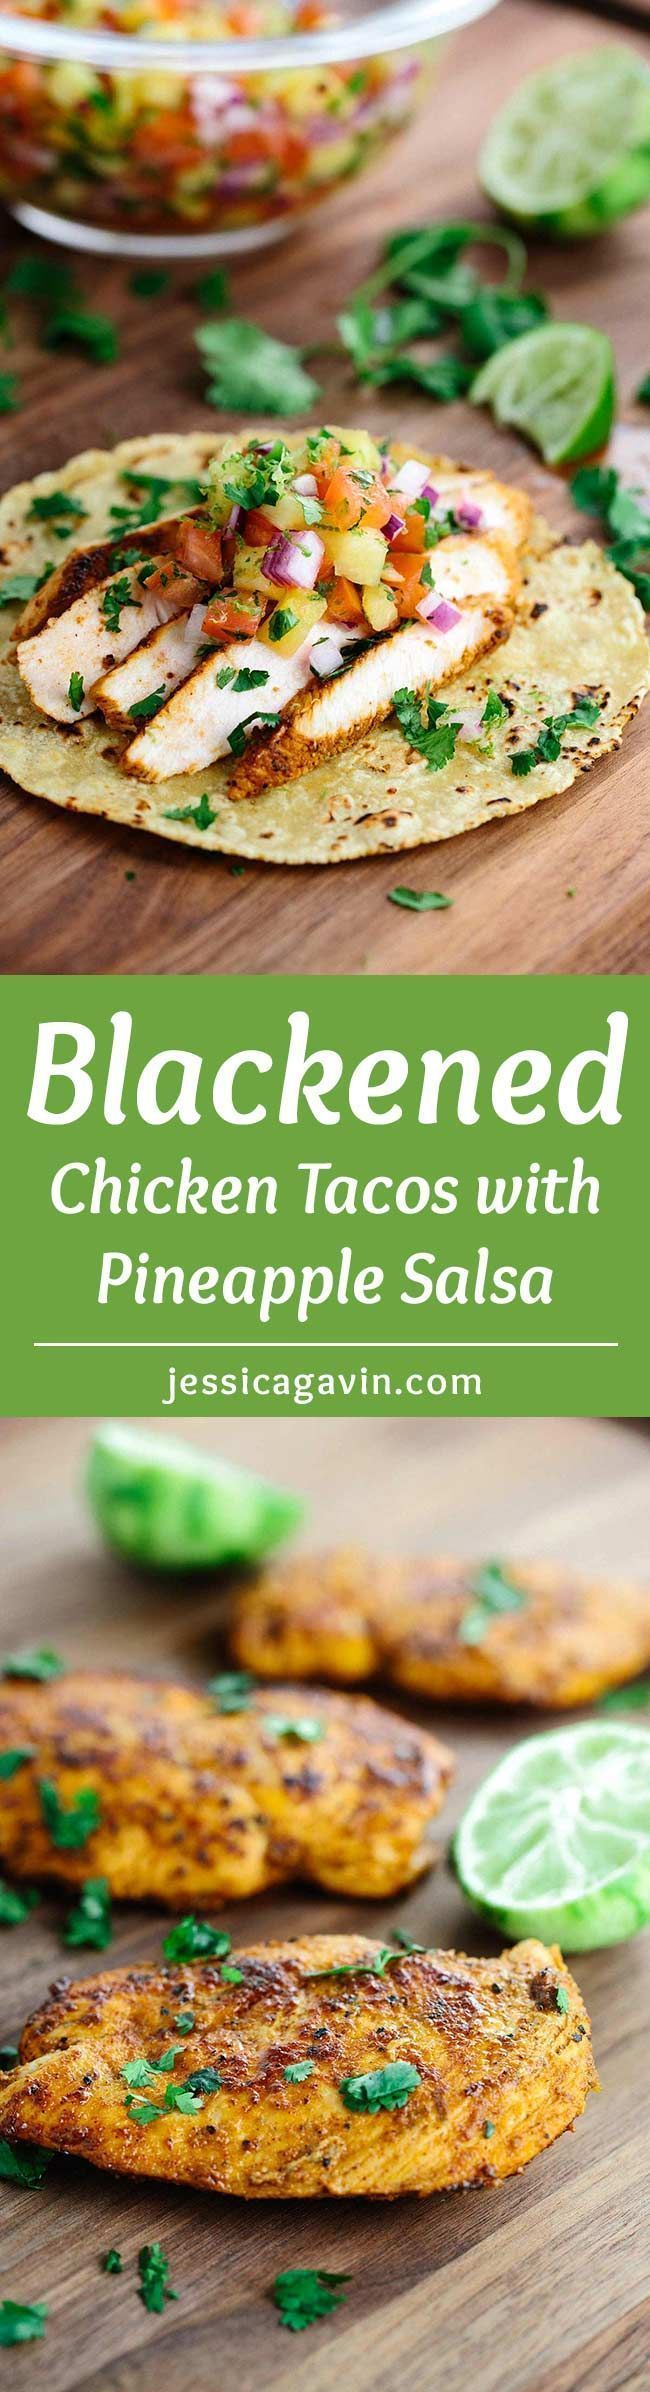 Blackened Chicken Tacos with Pineapple Salsa - This recipe will make any day feel like a Taco Tuesday fiesta! Healthy white meat chicken breast is marinated in savory spices and herbs.